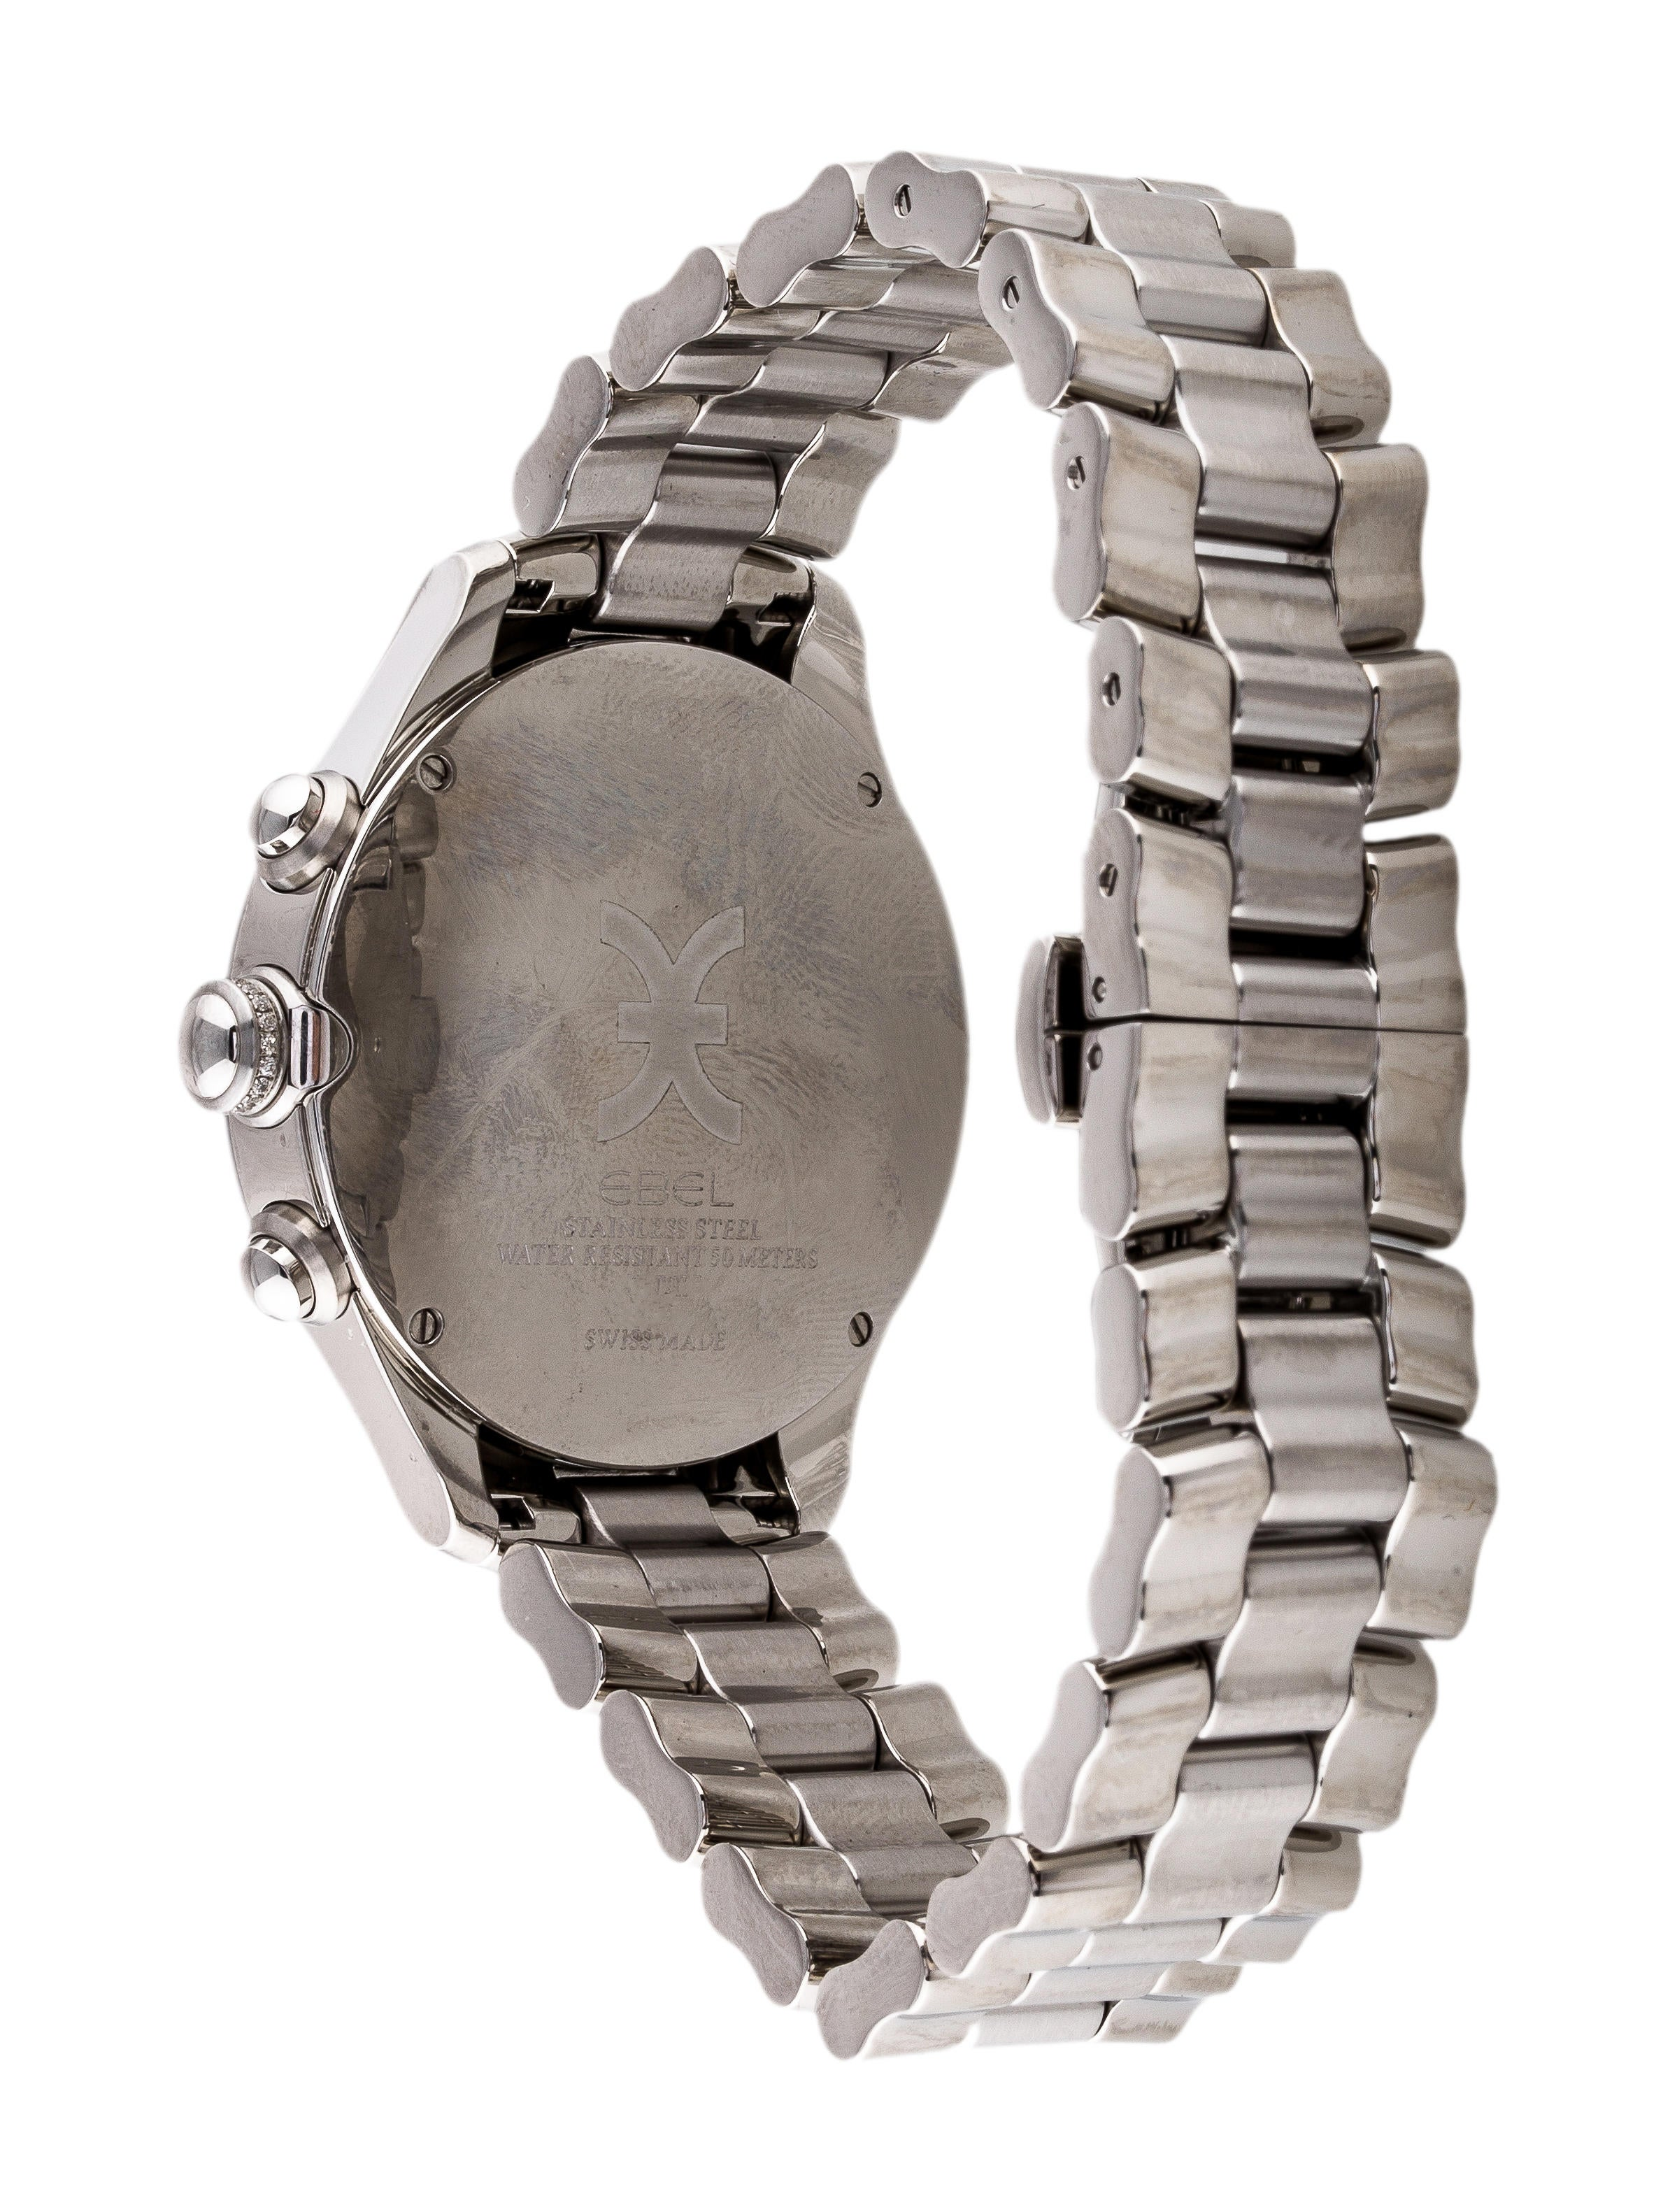 Ebel Onde Watch w Tags Bracelet EBE20700 The RealReal : EBE207003enlarged from www.therealreal.com size 2398 x 3163 jpeg 737kB